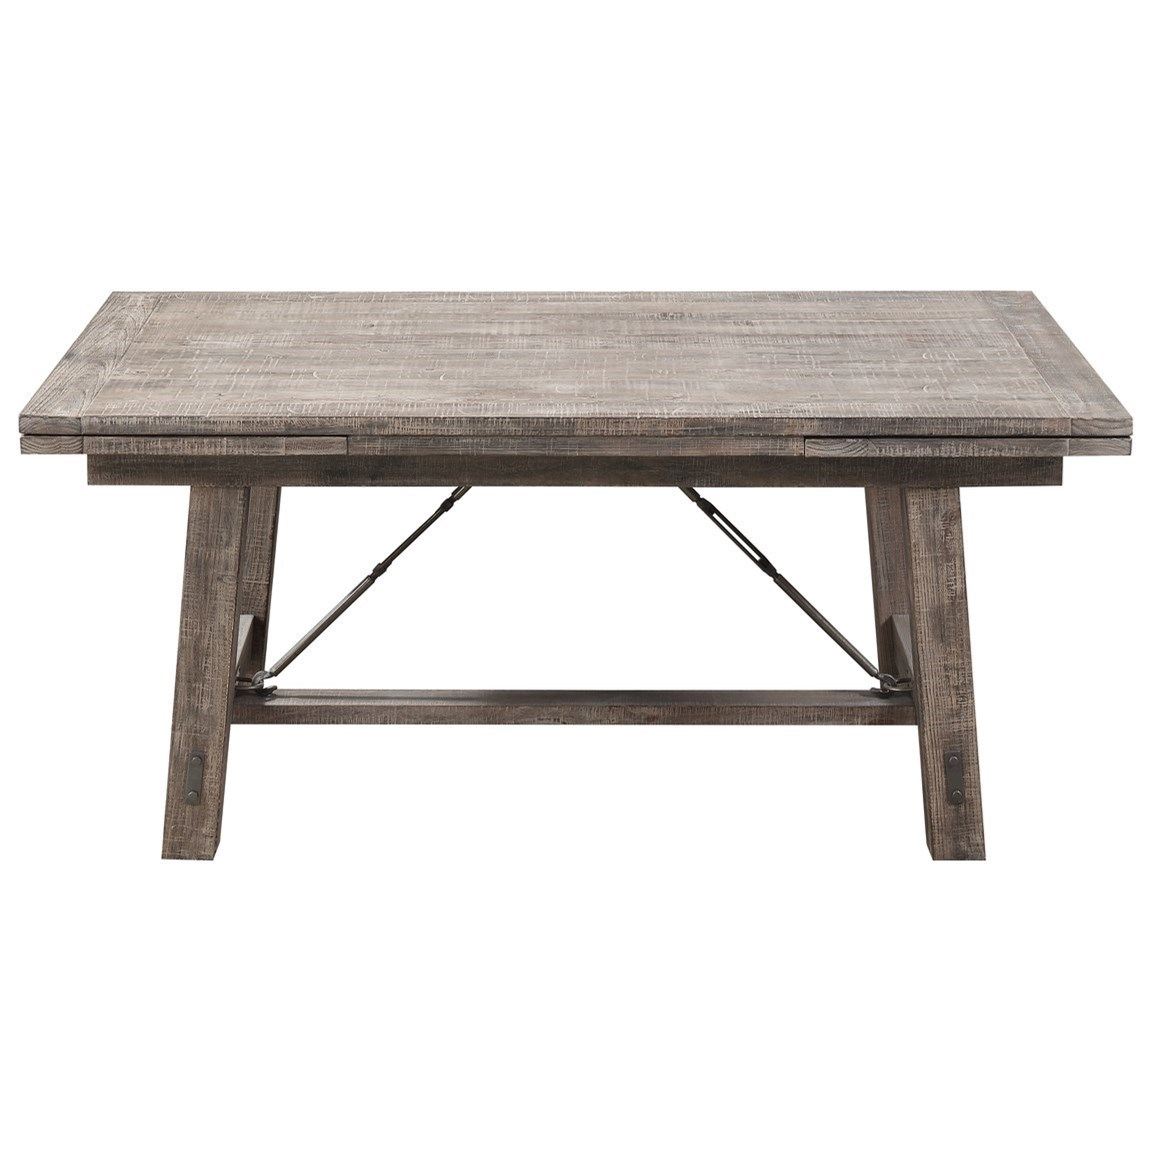 Dakota Refectory Trestle Dining Table by Emerald at Northeast Factory Direct